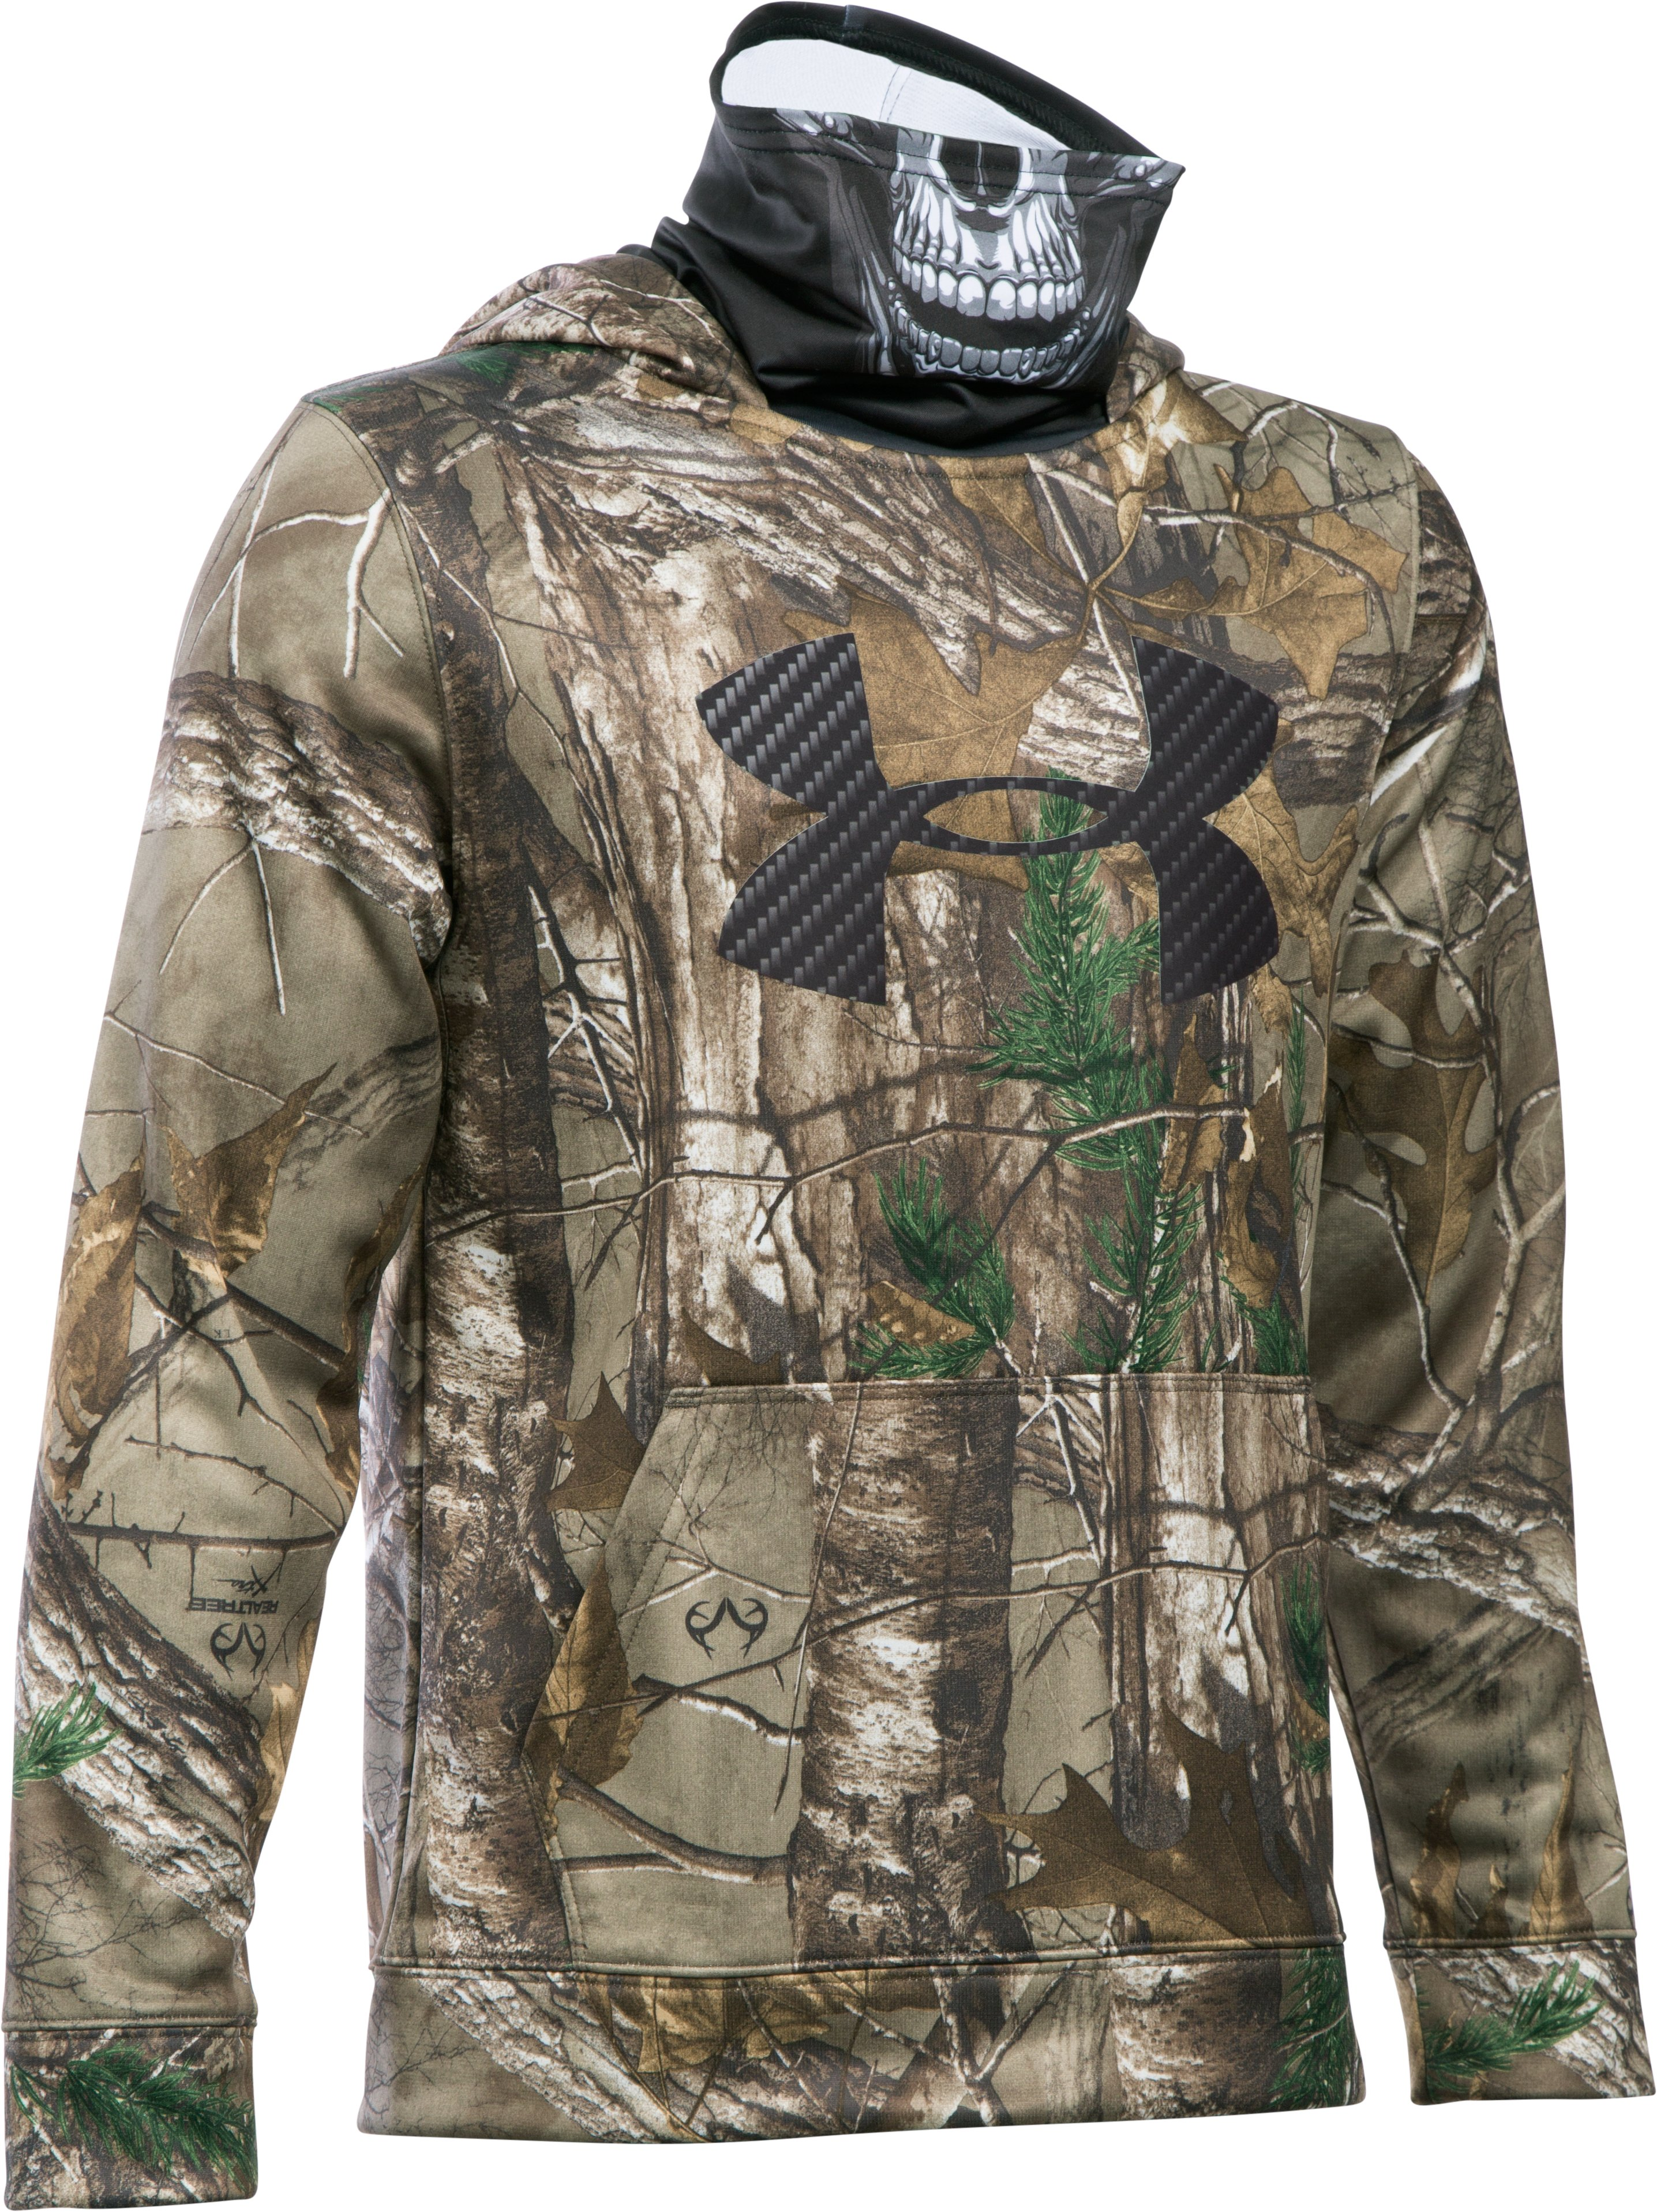 Boys' UA Storm Skull Mask Hoodie, REALTREE AP-XTRA, zoomed image